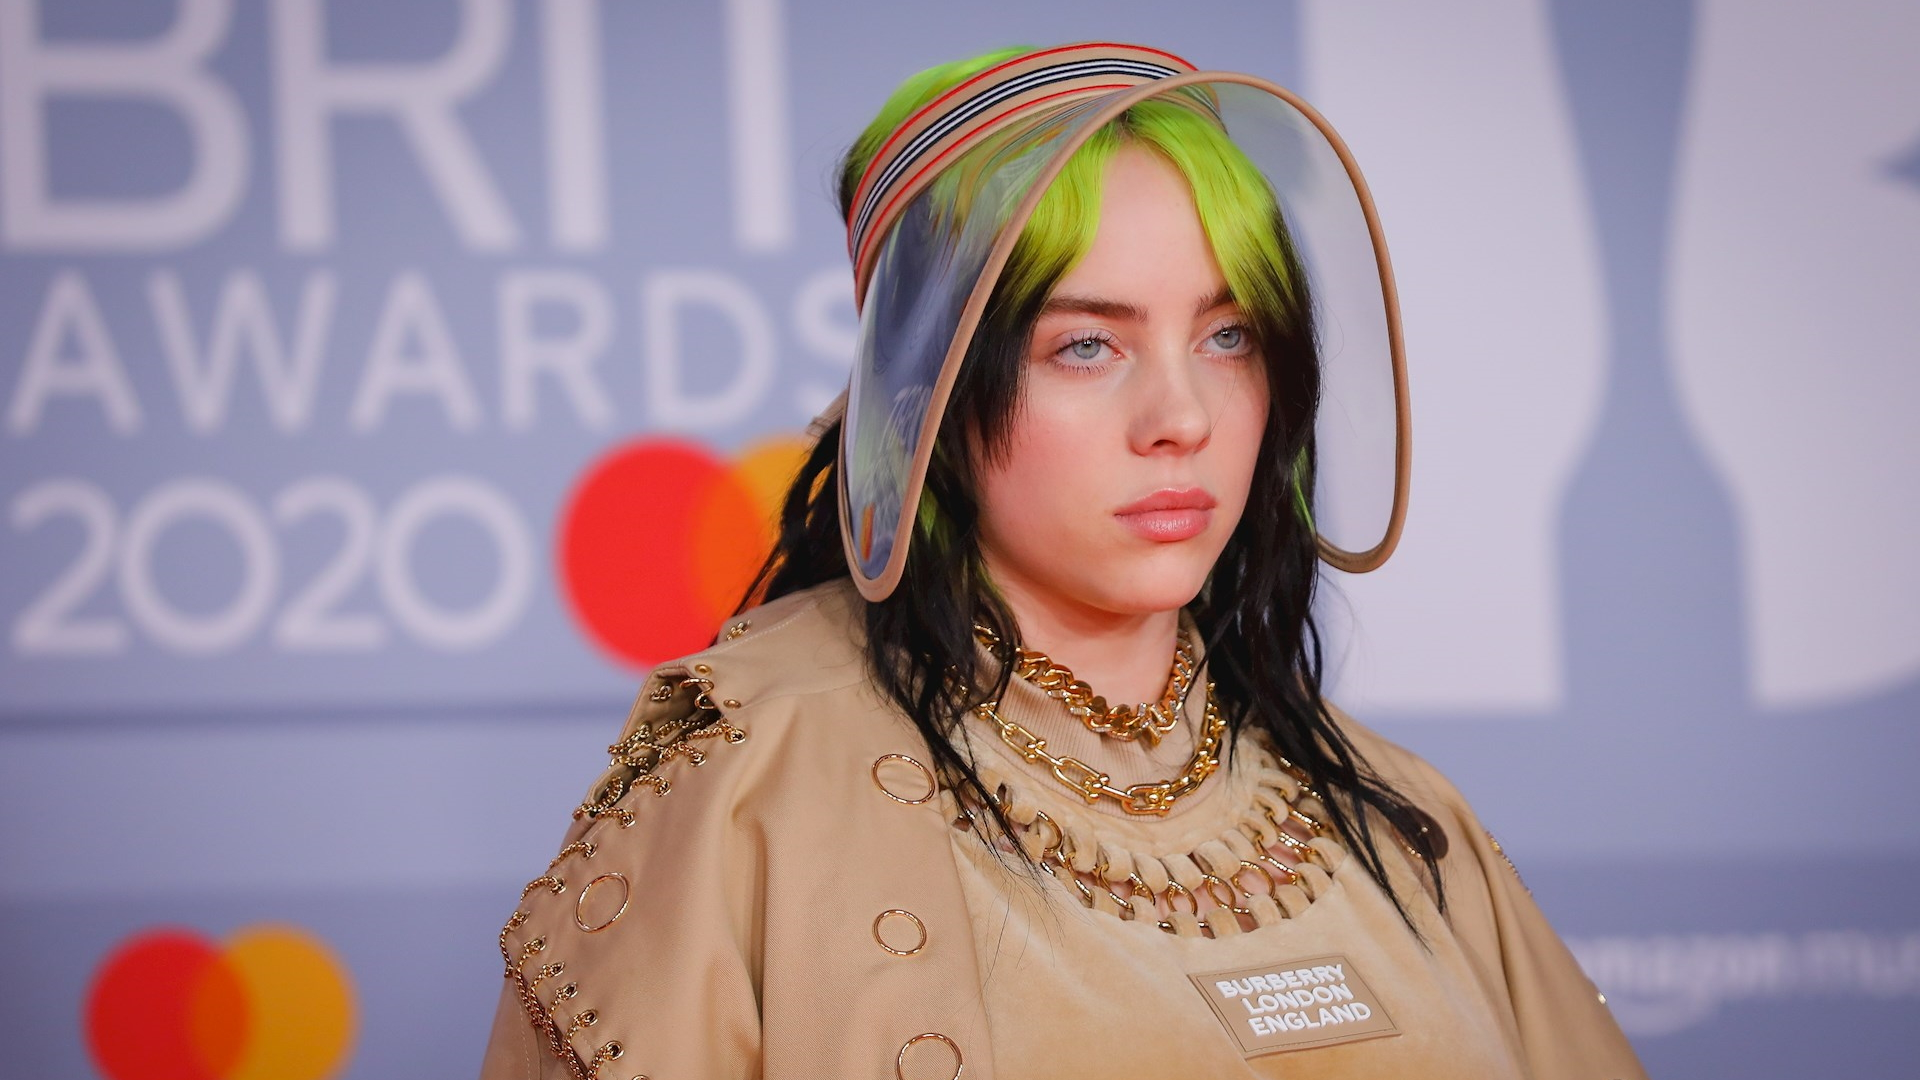 Billie Eilish publicó